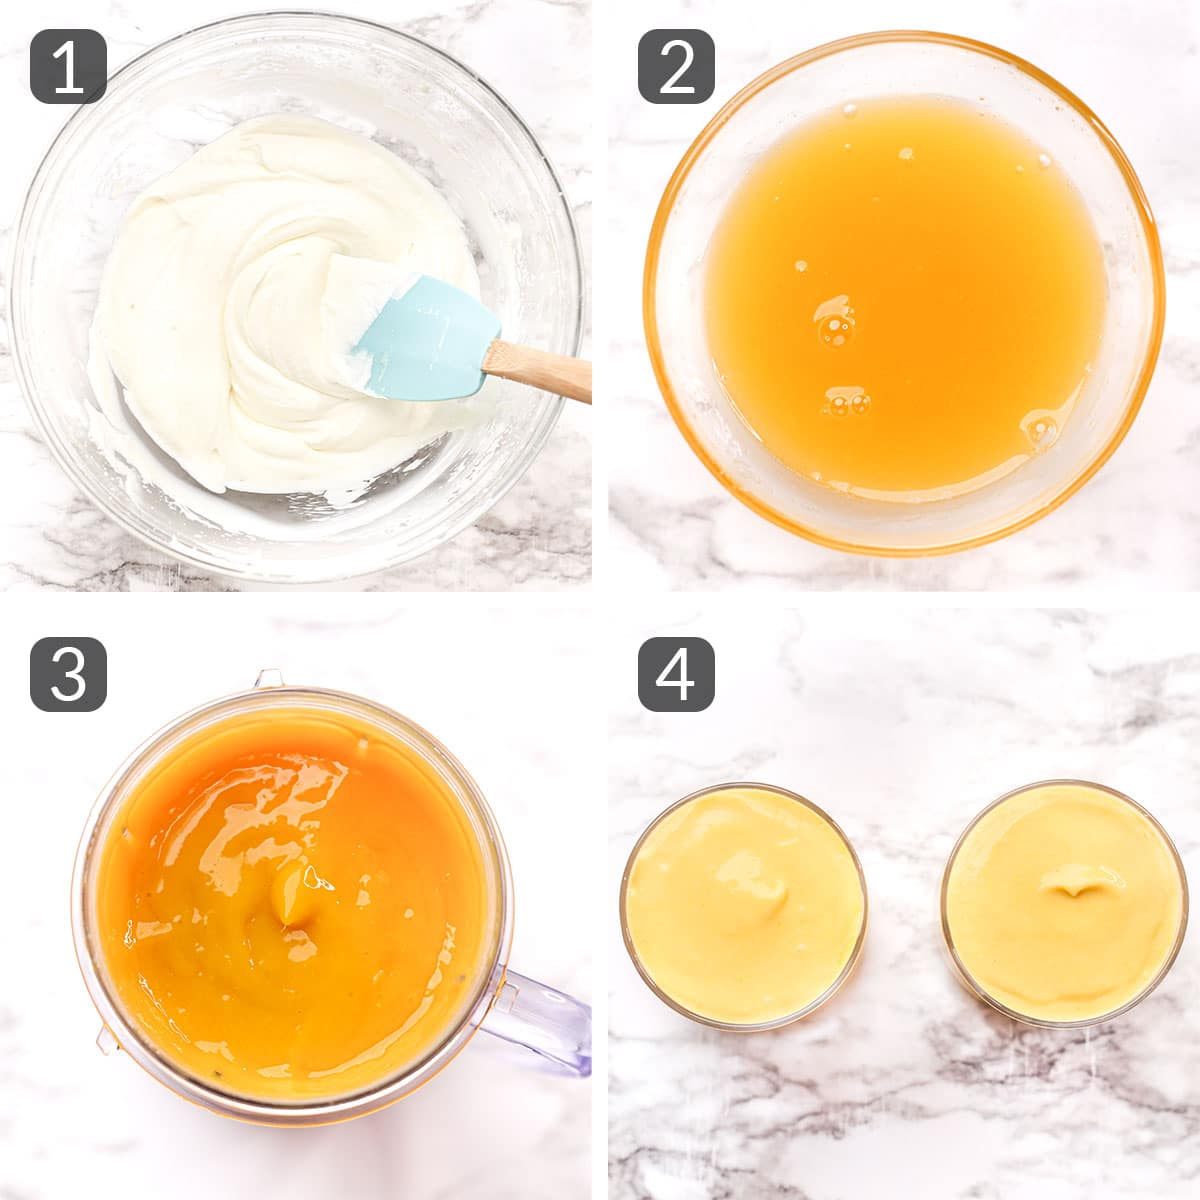 step photos showing how to make mango mousse